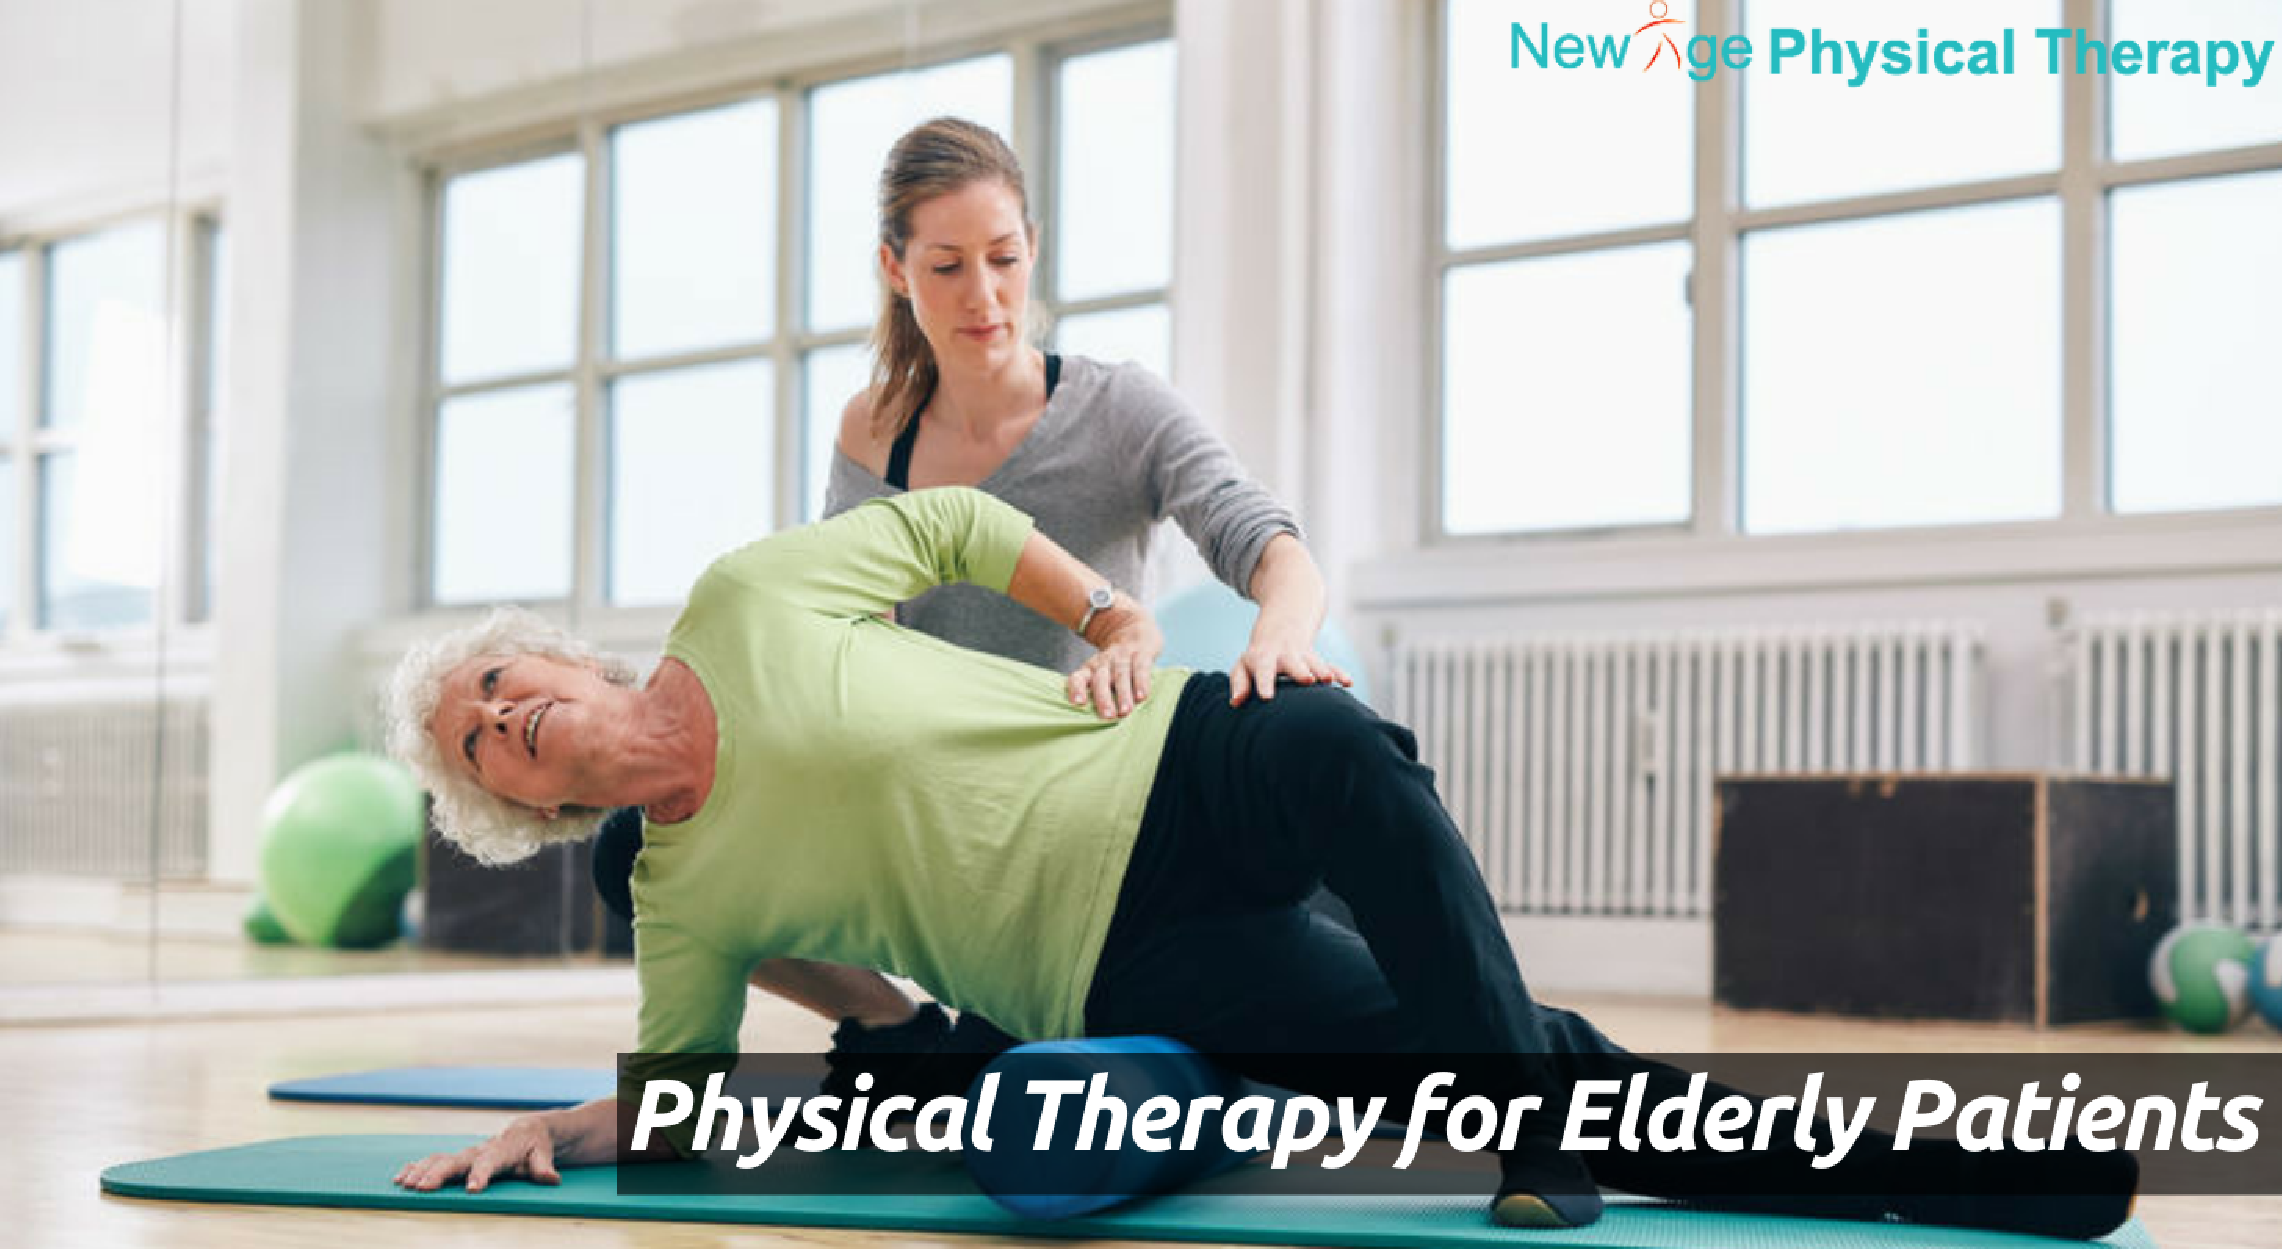 How New Age Physical Therapy Can Help Elderly Patients ...